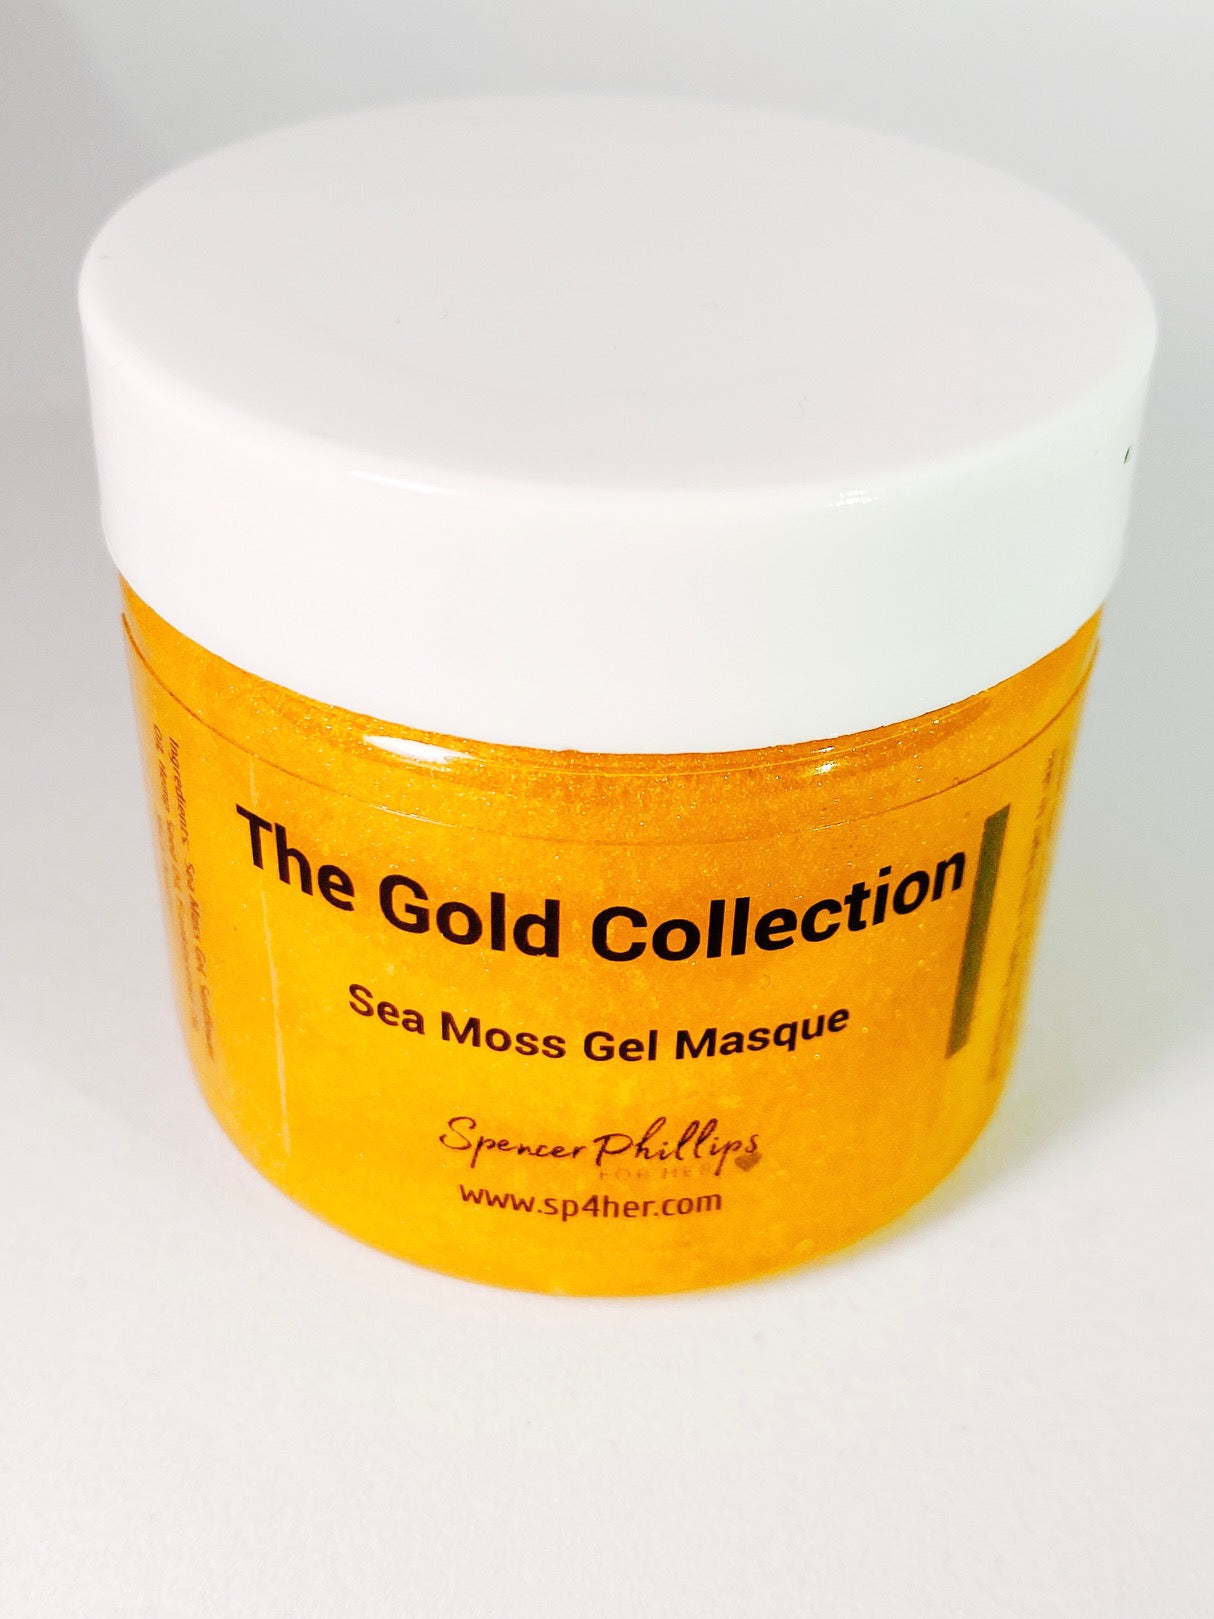 Golden Sea Moss Gel Masque